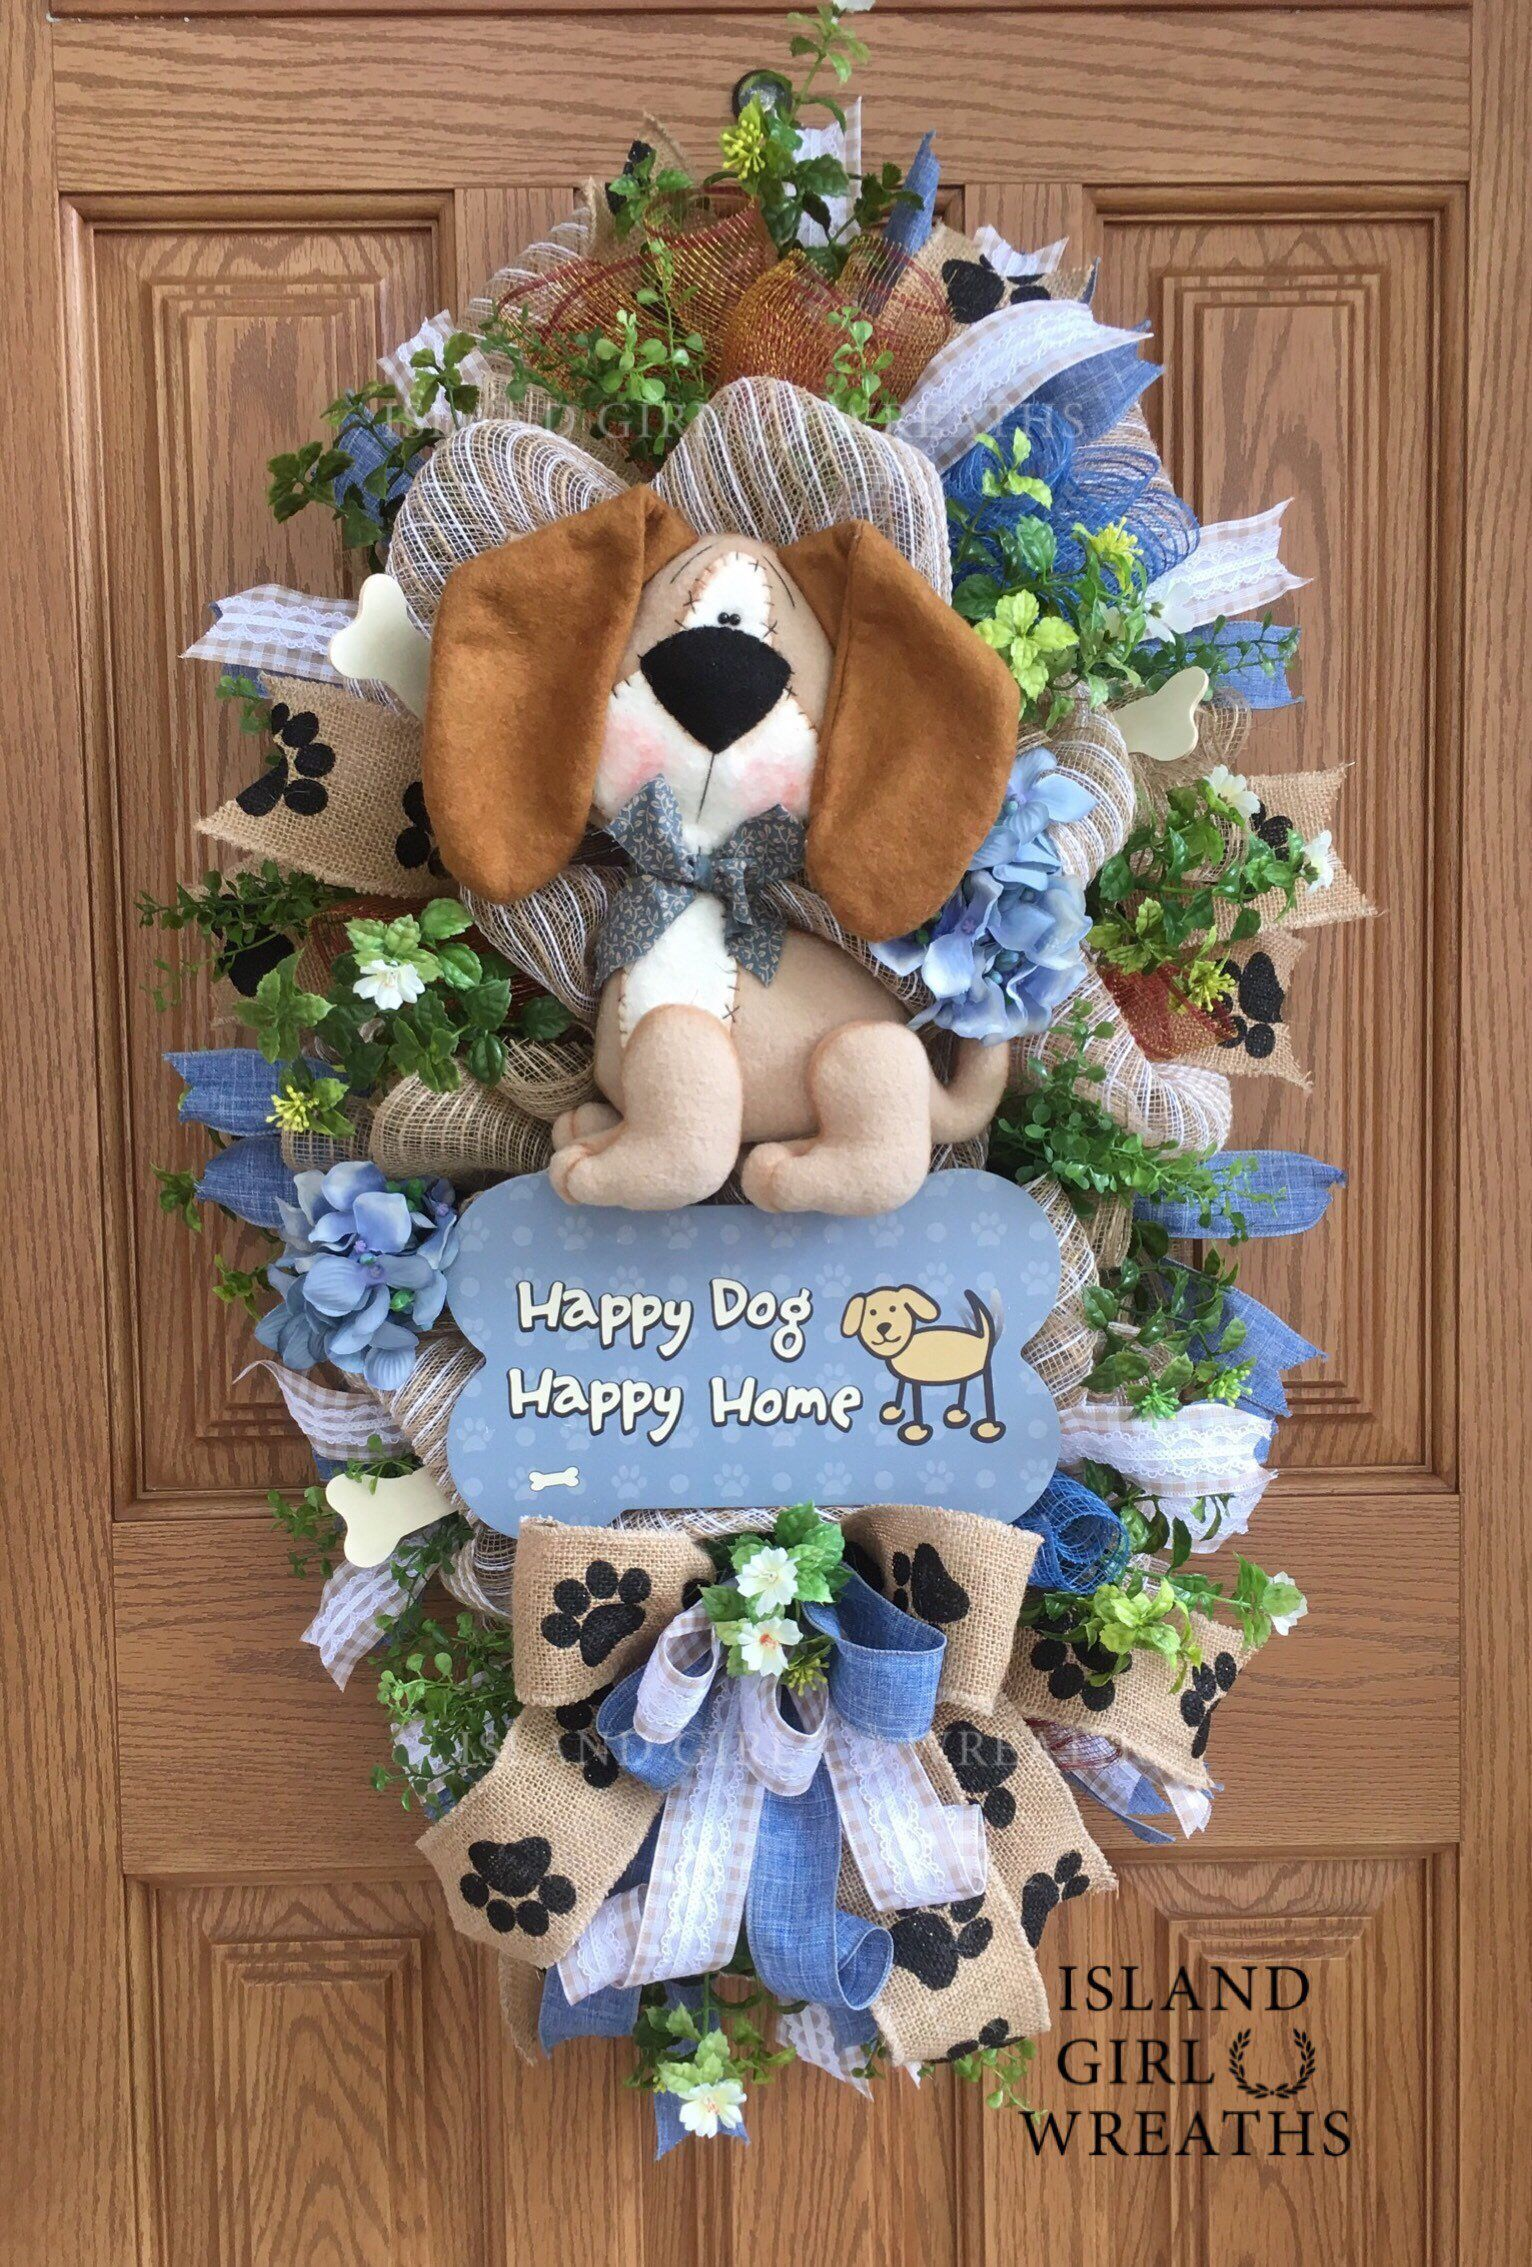 #everyday #wreaths #excited #lovers #burlap #wreath #share #happy #front #etsy #home #gift #swag #mesh #doorExcited to share this item from my shop: Dog Wreath, Dog Wreath For Front Door, Burlap Dog Wreath, Dog Swag, Everyday Wreaths, Dog Lovers Gift, Happy Dog Happy Home, Dog Mesh Wreath